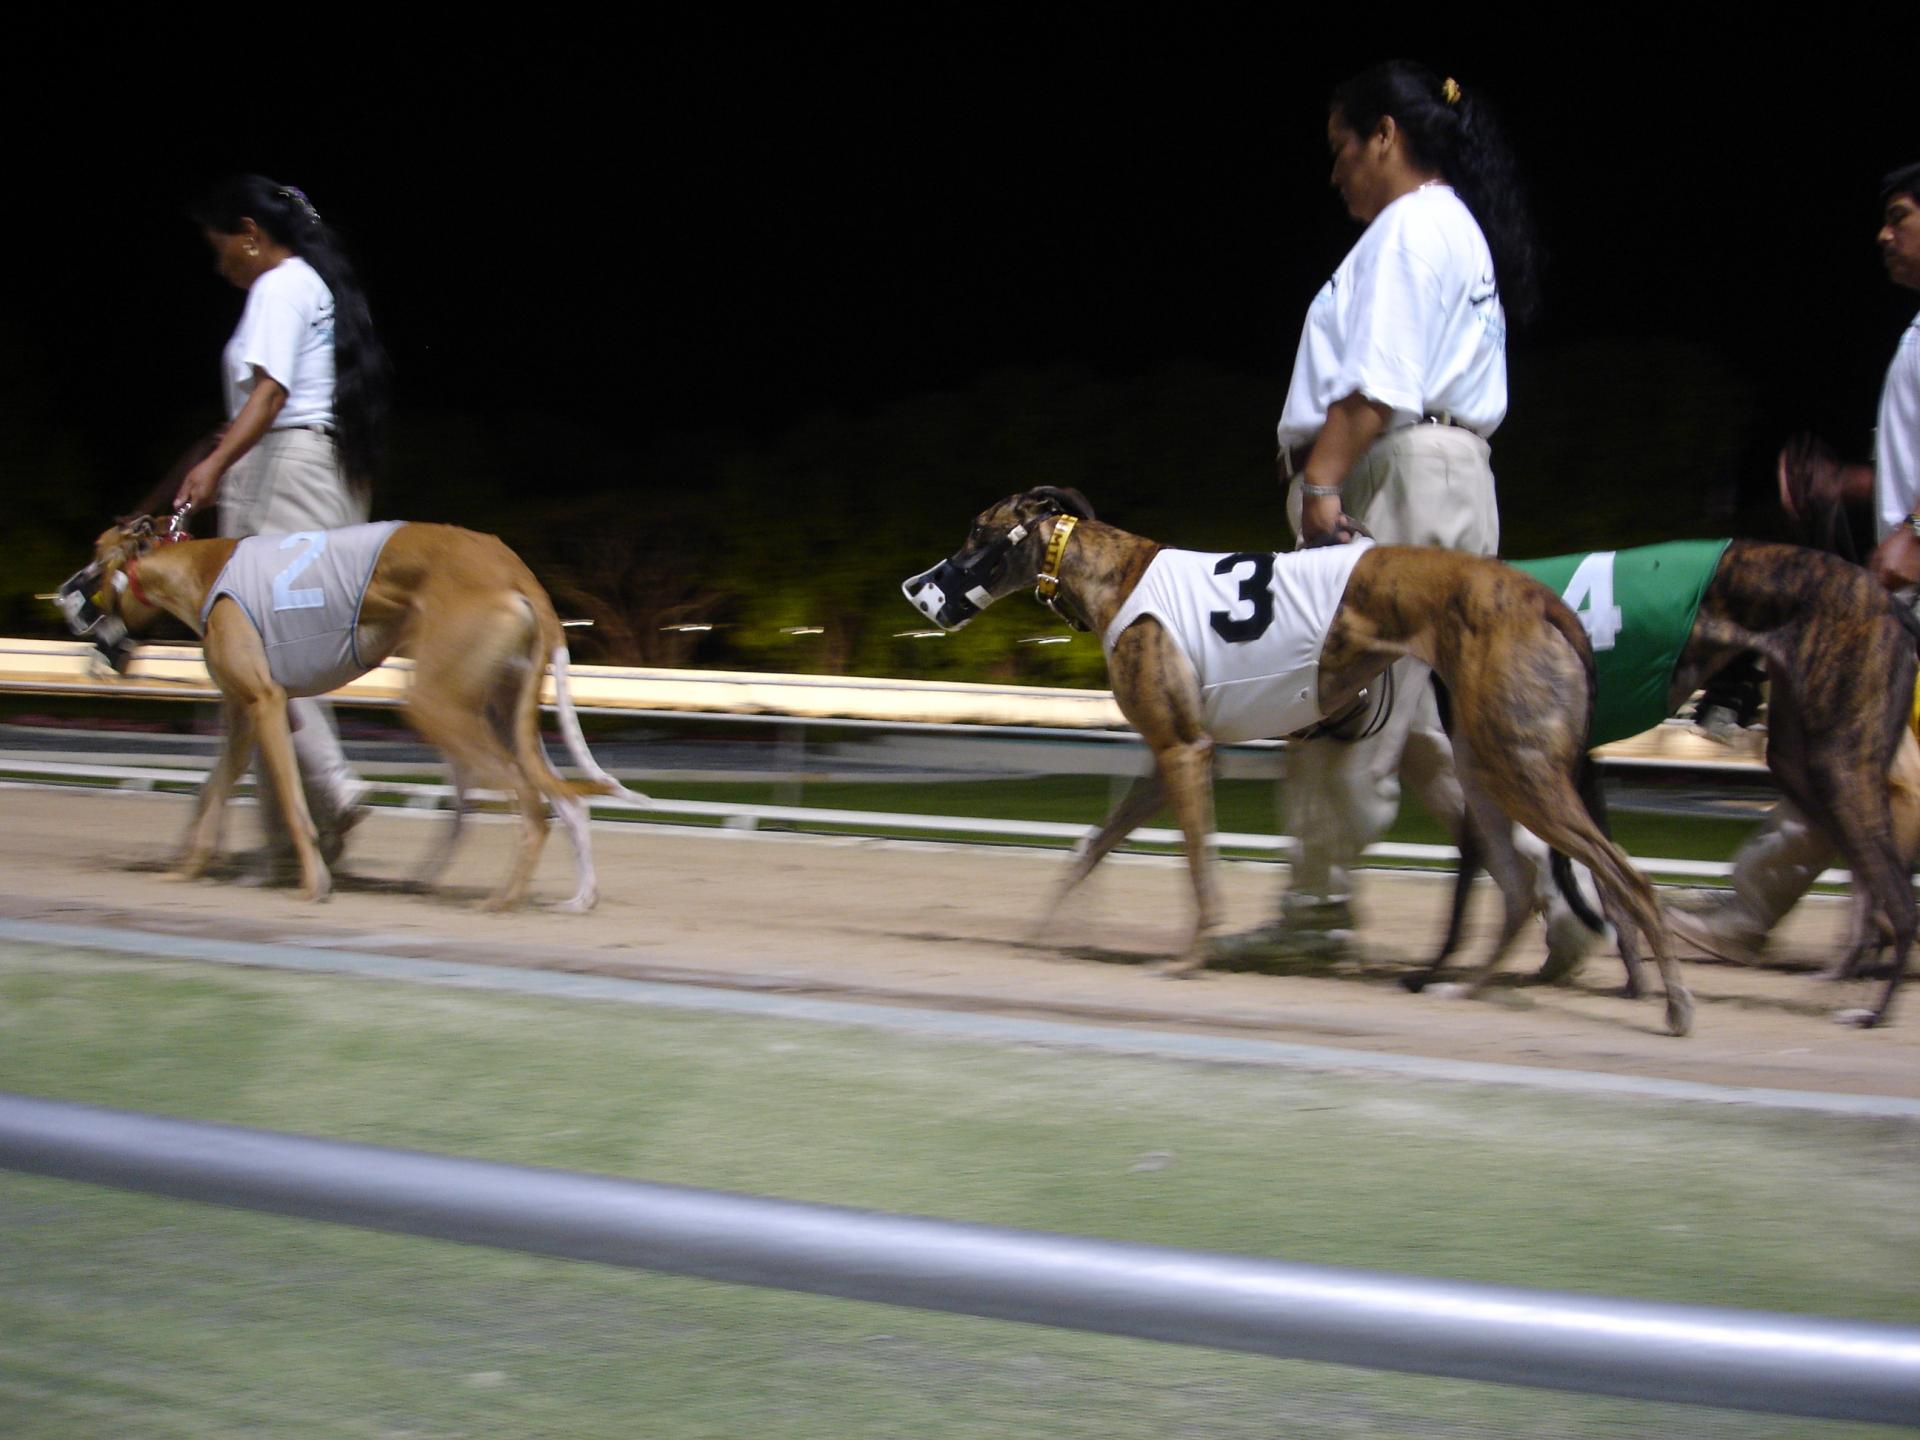 Florida greyhound race ban 2018